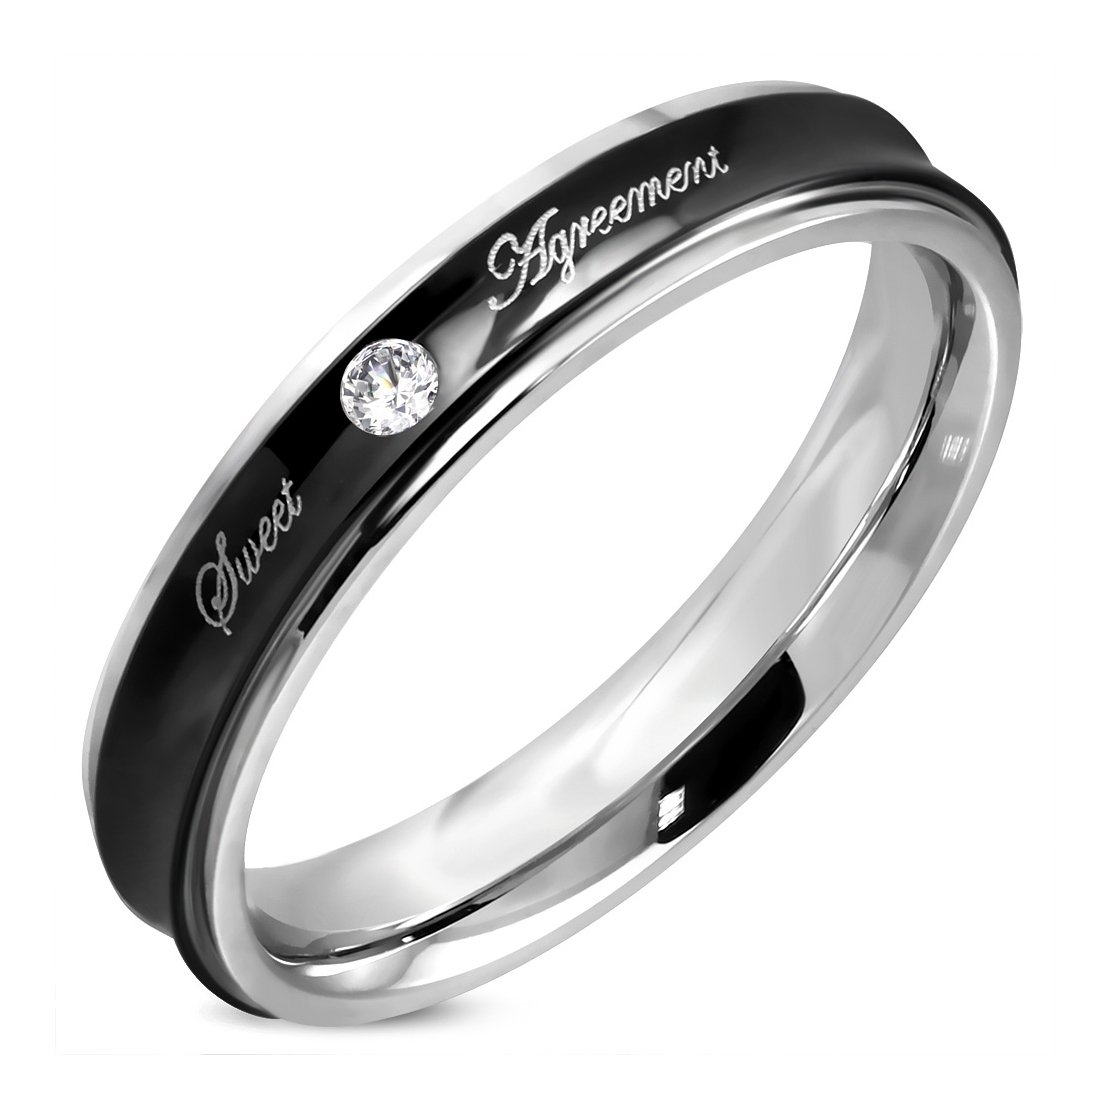 Stainless Steel 2 Color Sweet Agreement Love Concave Comfort Fit Wedding Band Ring with Clear CZ